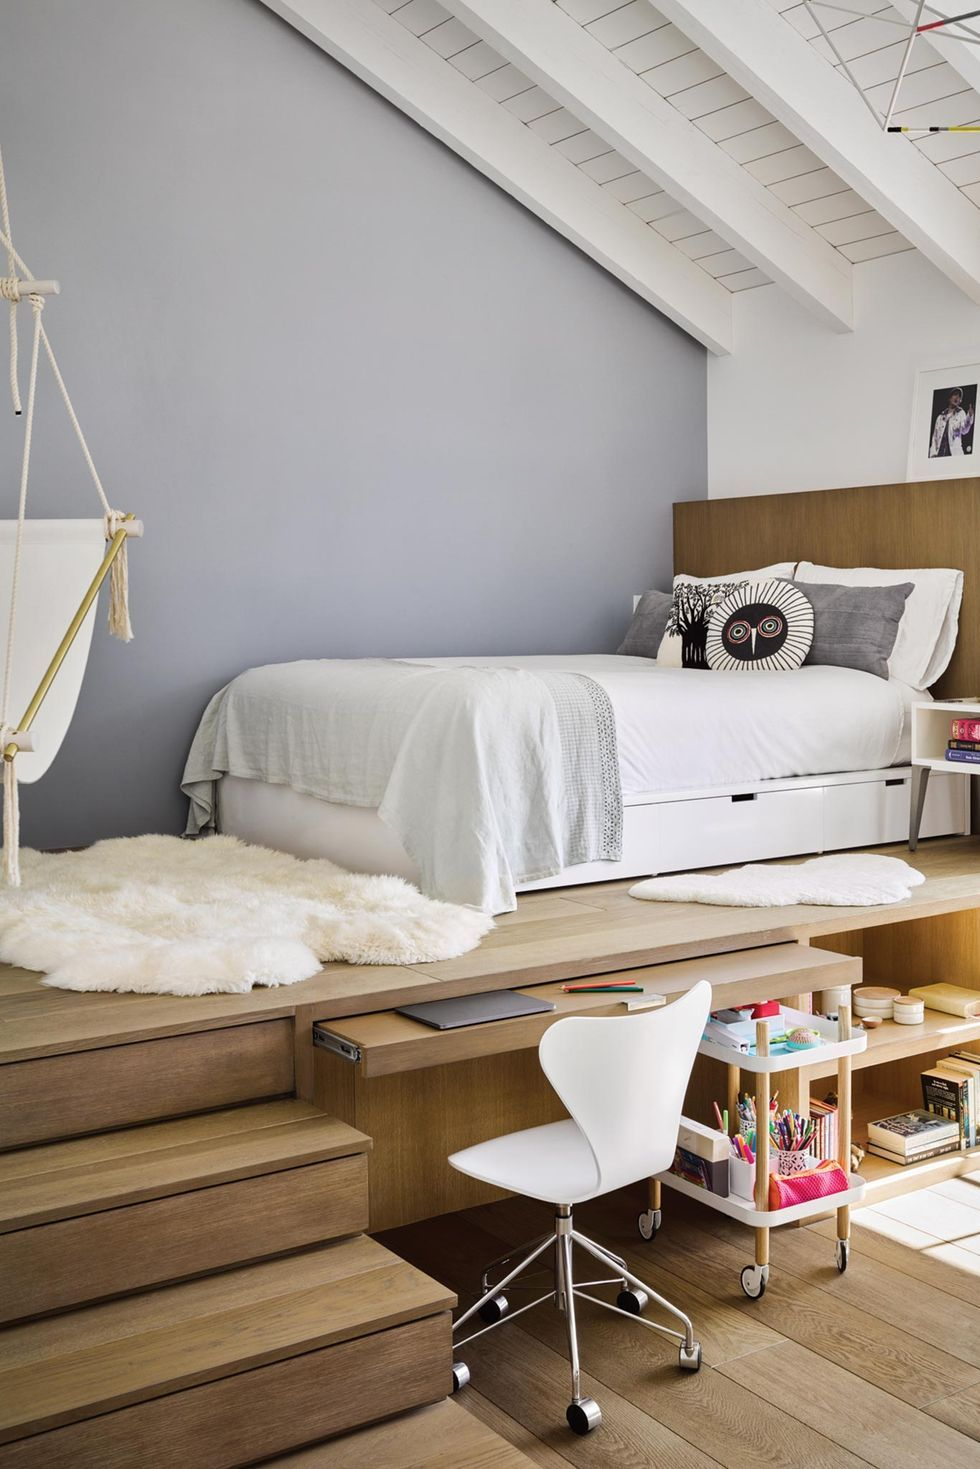 4 Stylish Loft Bedroom Ideas - Clever Design Tips for Studios